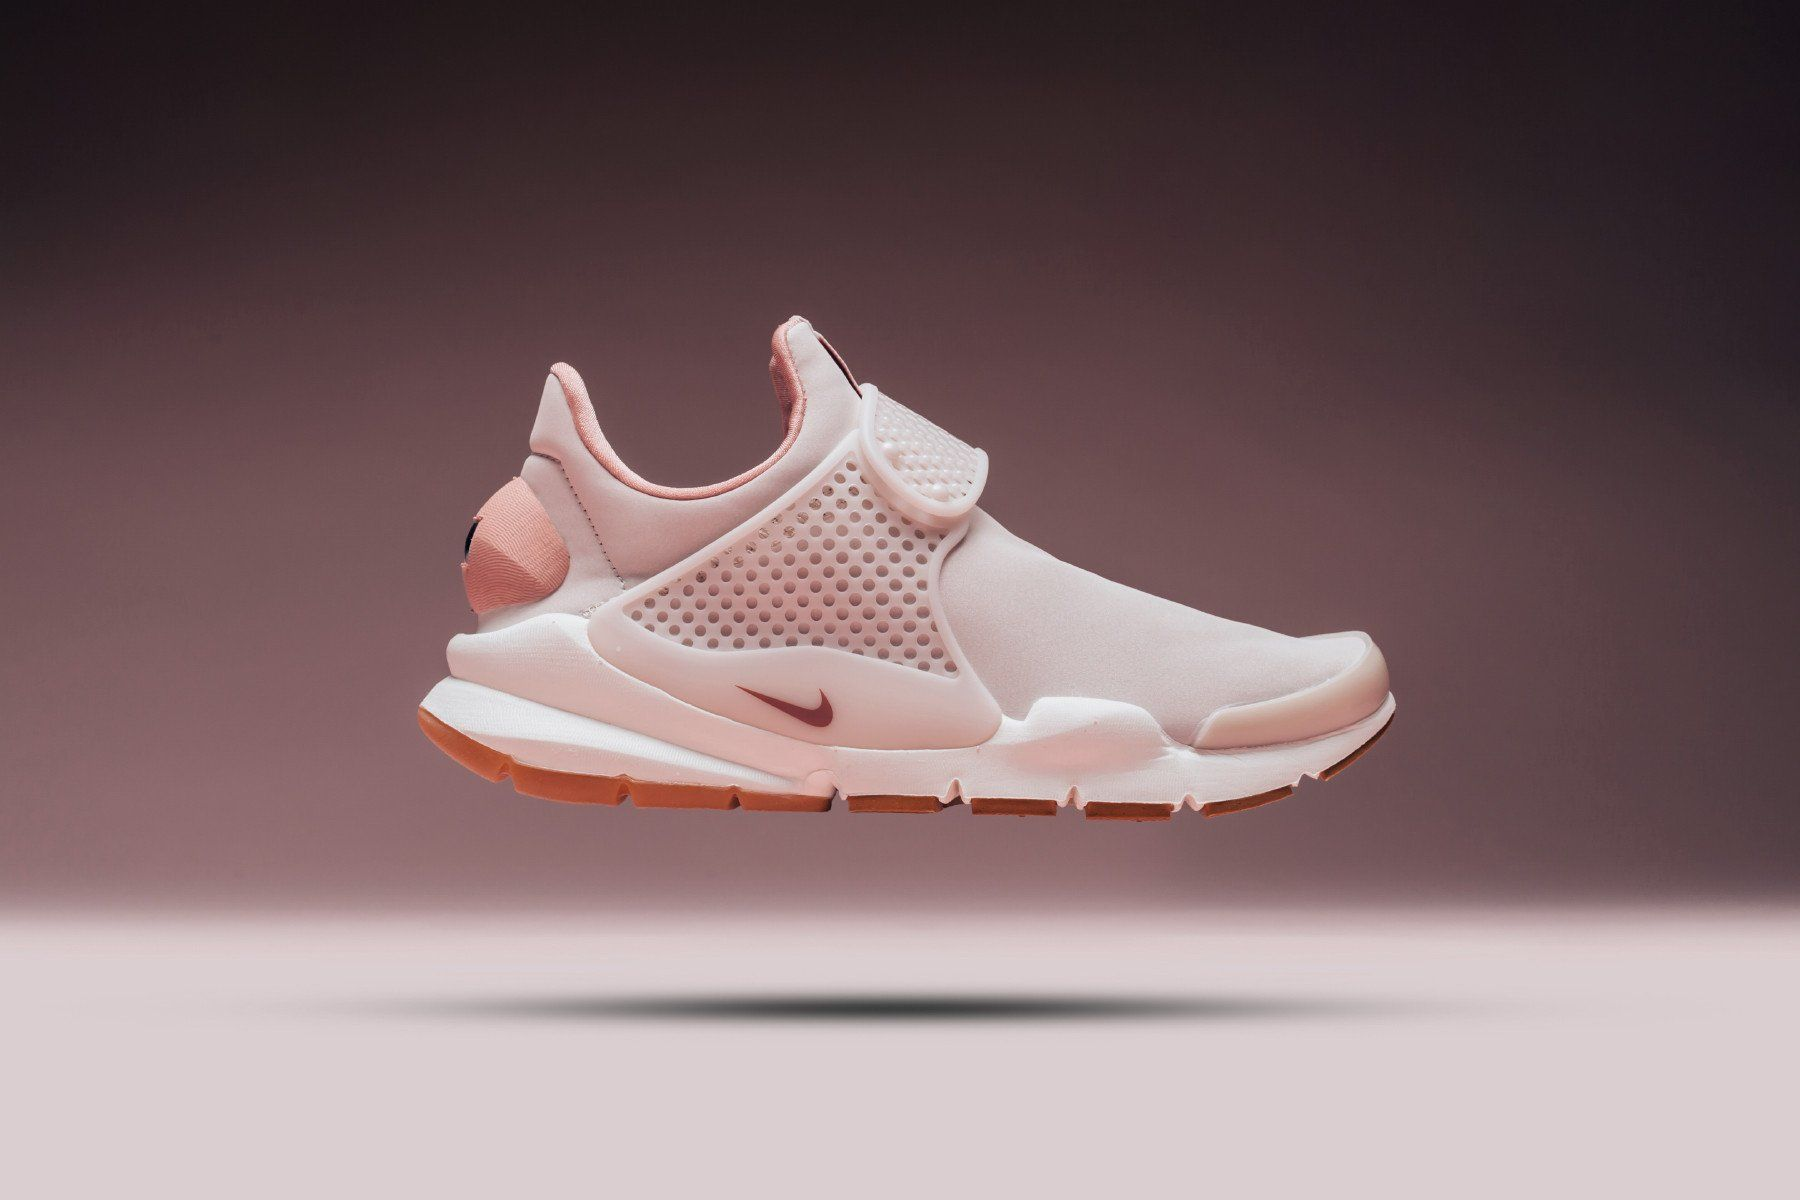 outlet store f33ca a48d9 This Nike Sock Dart Is Pink and Premium   Sneakers   Sock ...